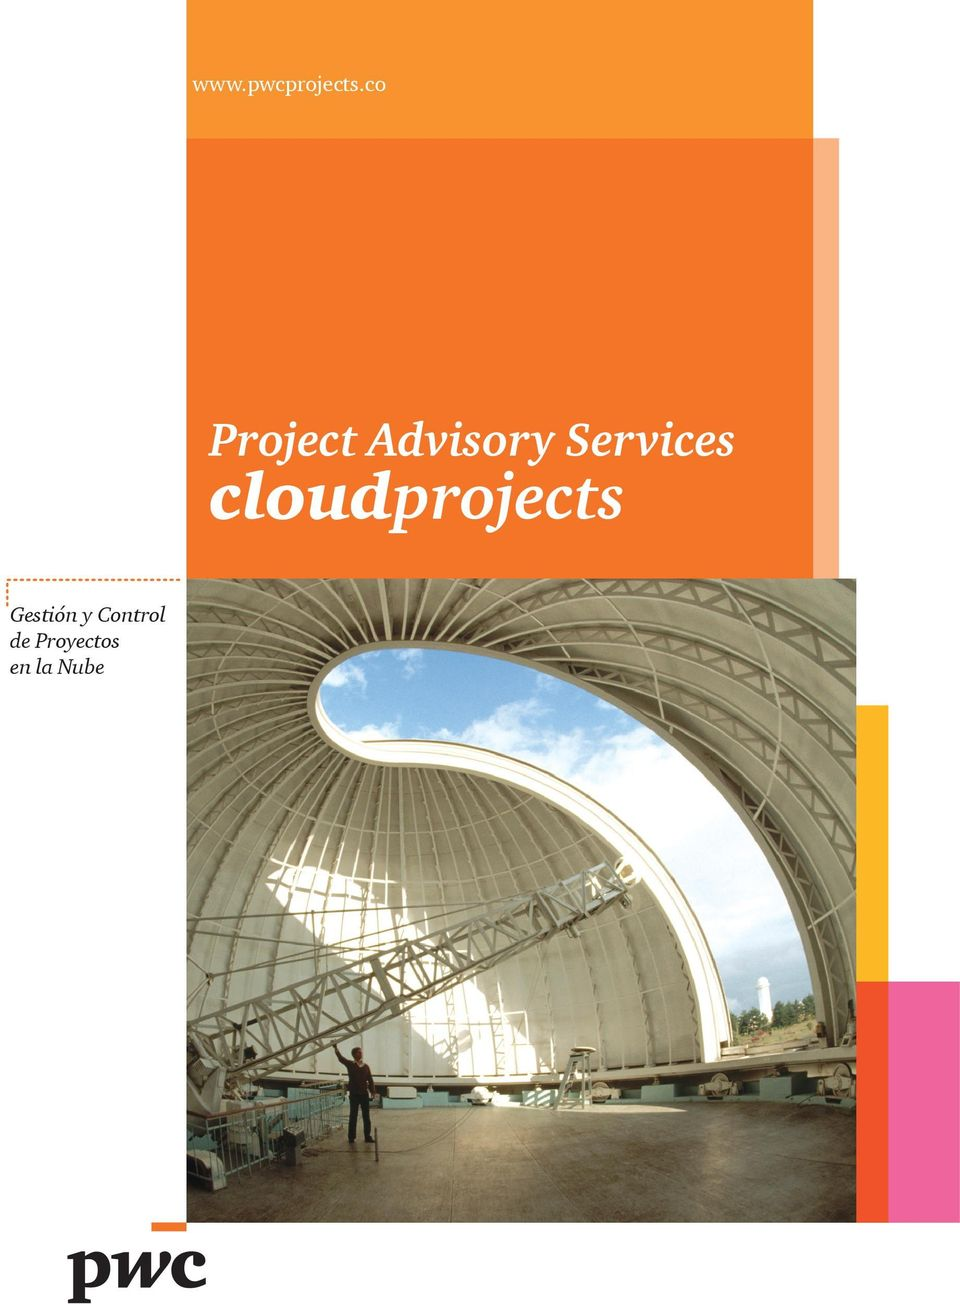 Services cloudprojects